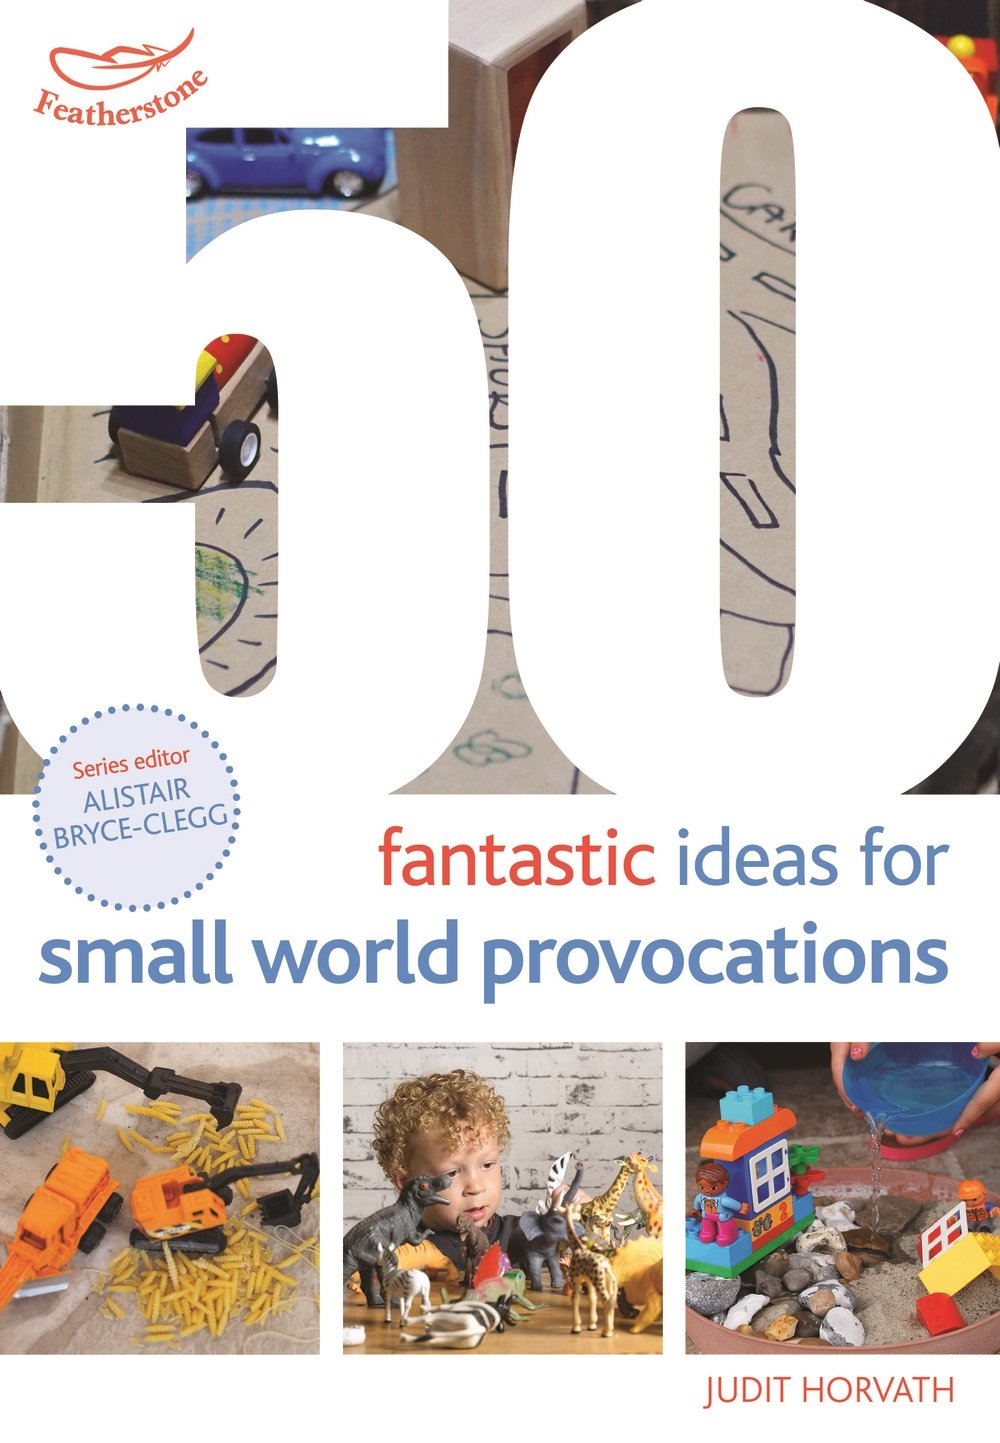 FEATHERSTONE:    50 FANTASTIC IDEAS FOR SMALL WORLD PROVOCATIONS